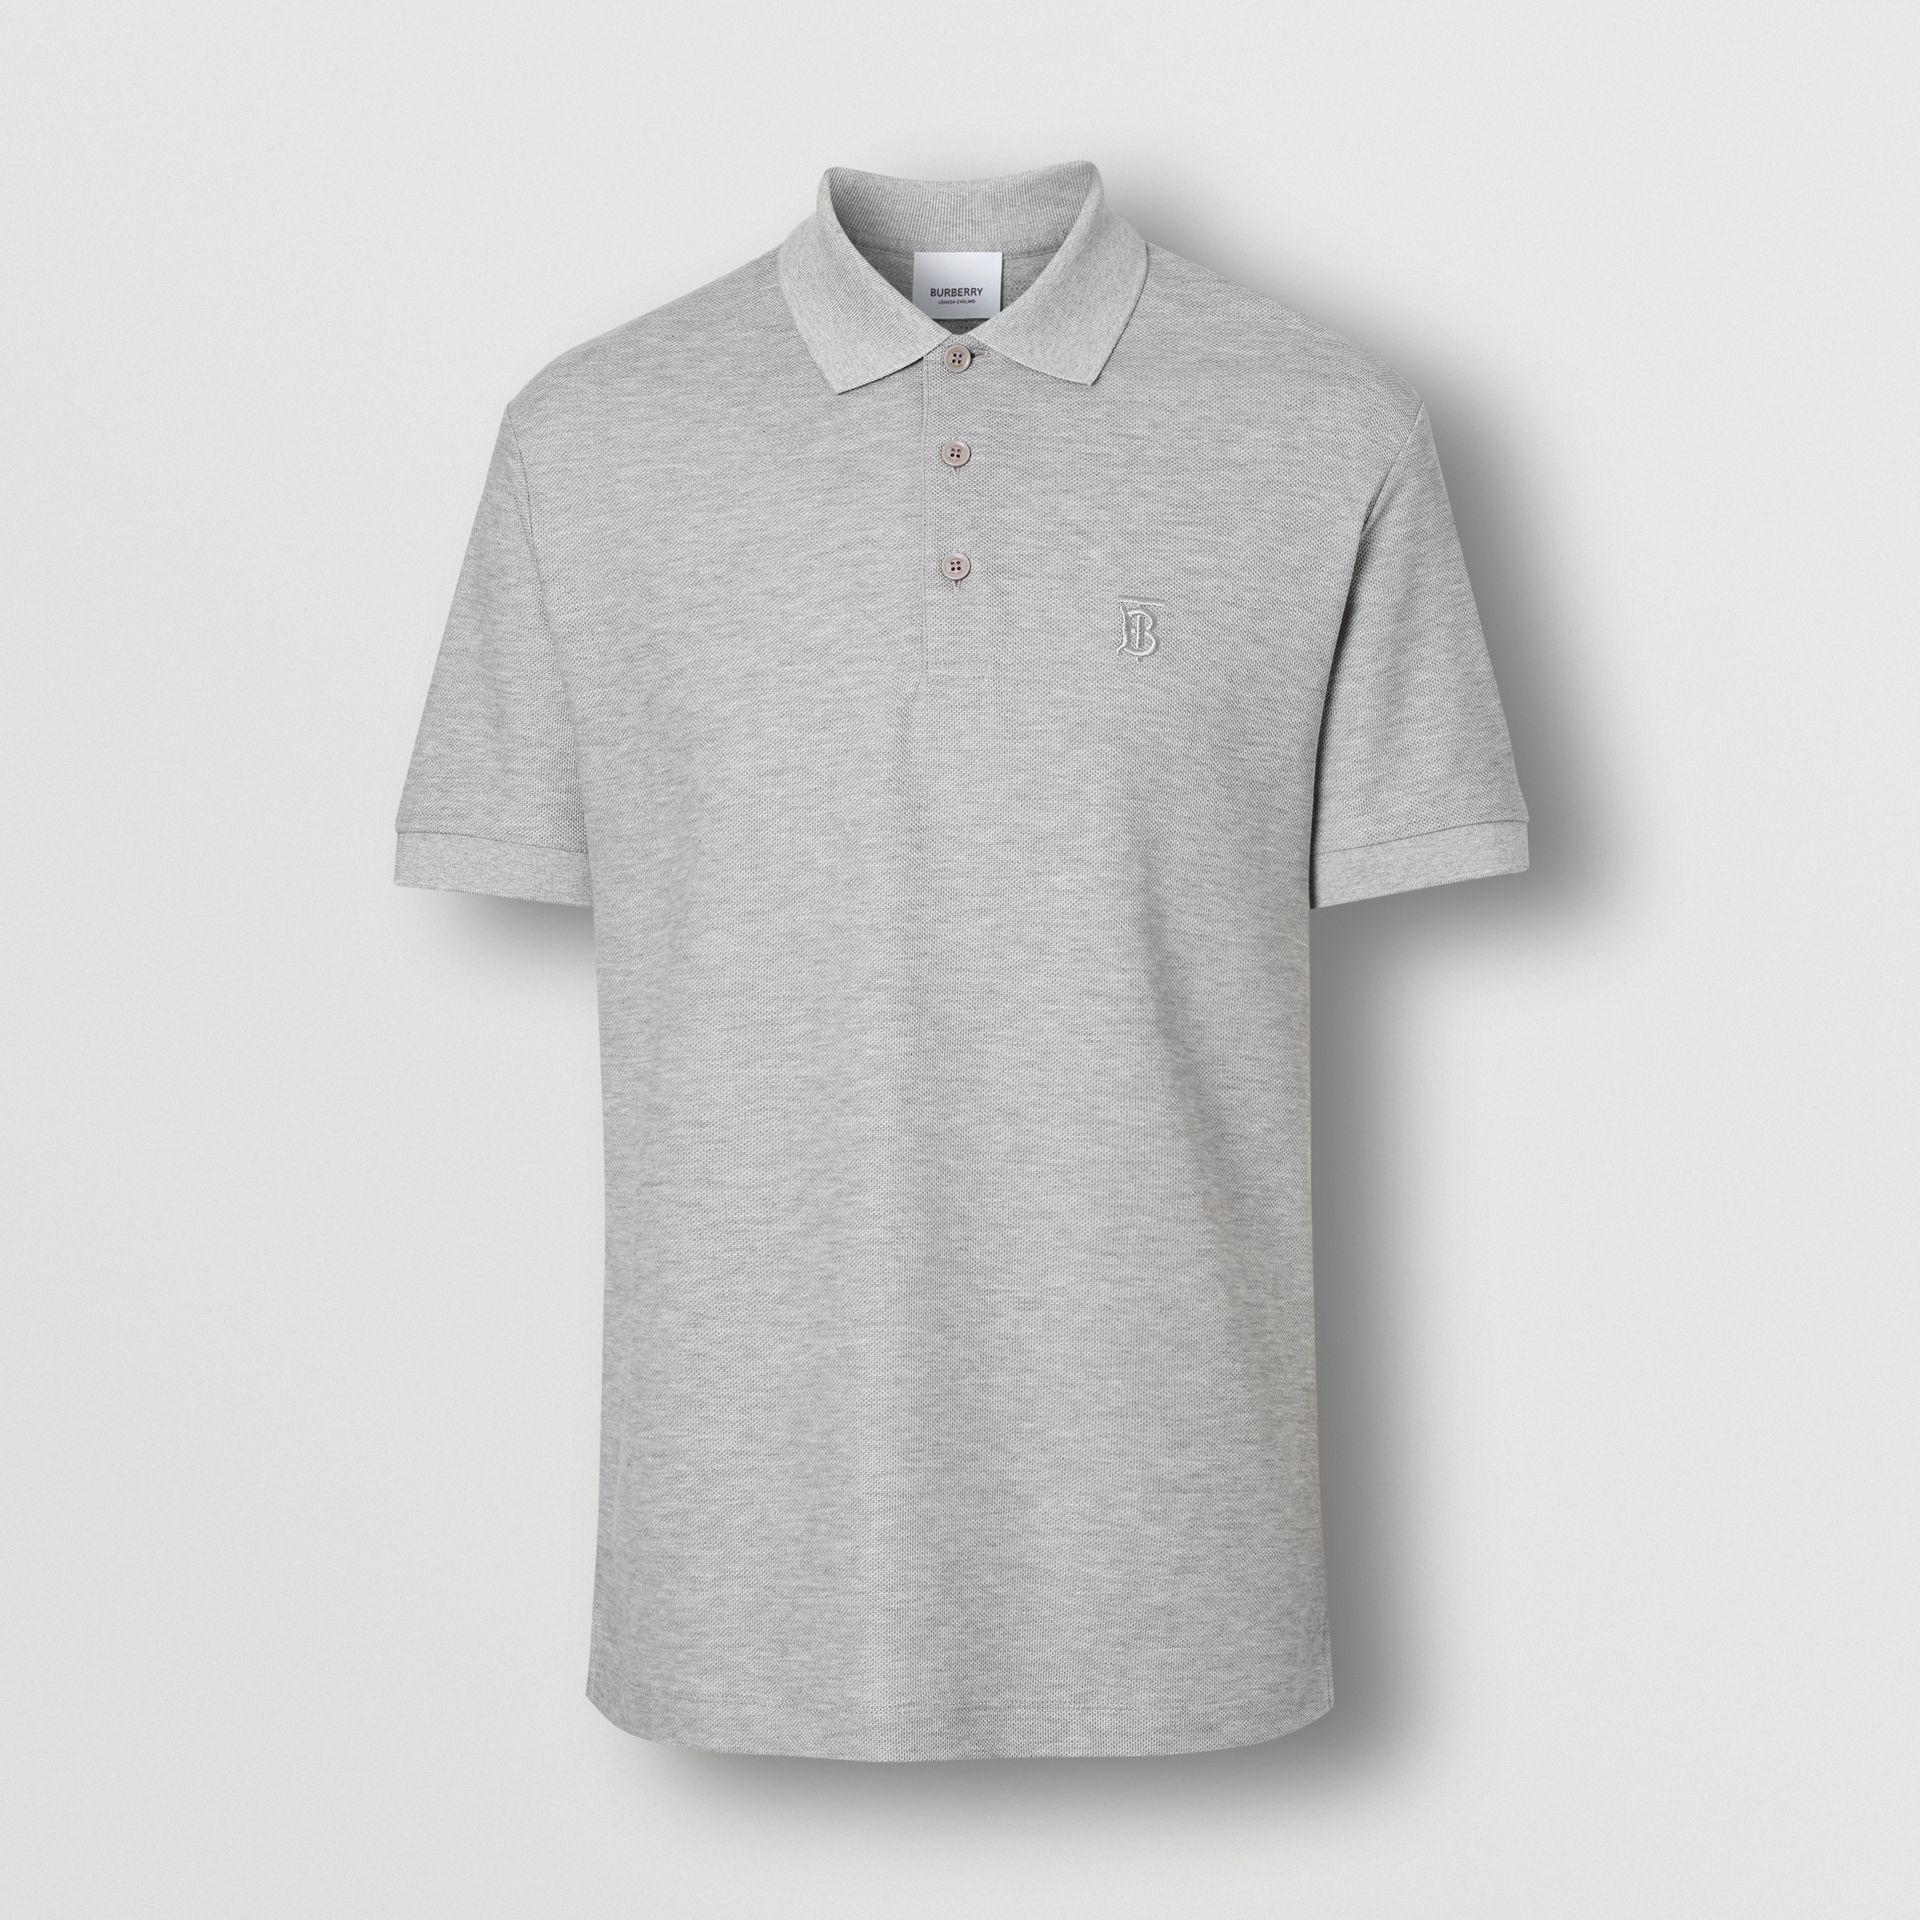 Monogram Motif Cotton Piqué Polo Shirt in Pale Grey Melange - Men | Burberry Hong Kong S.A.R - gallery image 3